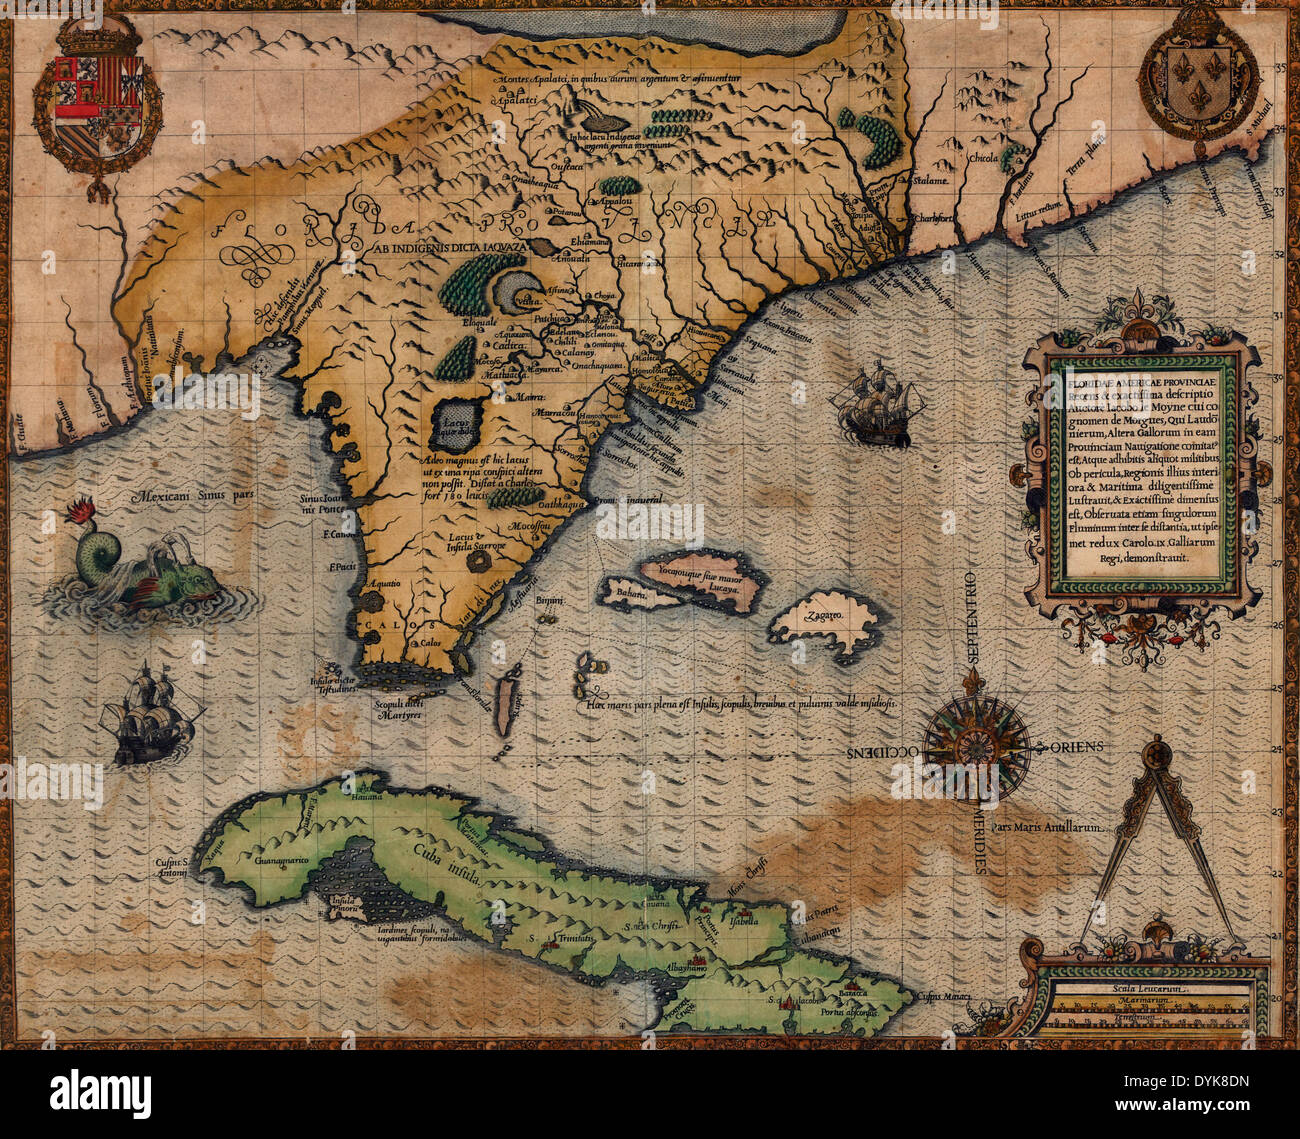 Map of florida and cuba stock photos map of florida and cuba stock map of florida and cuba circa 1588 stock image gumiabroncs Image collections